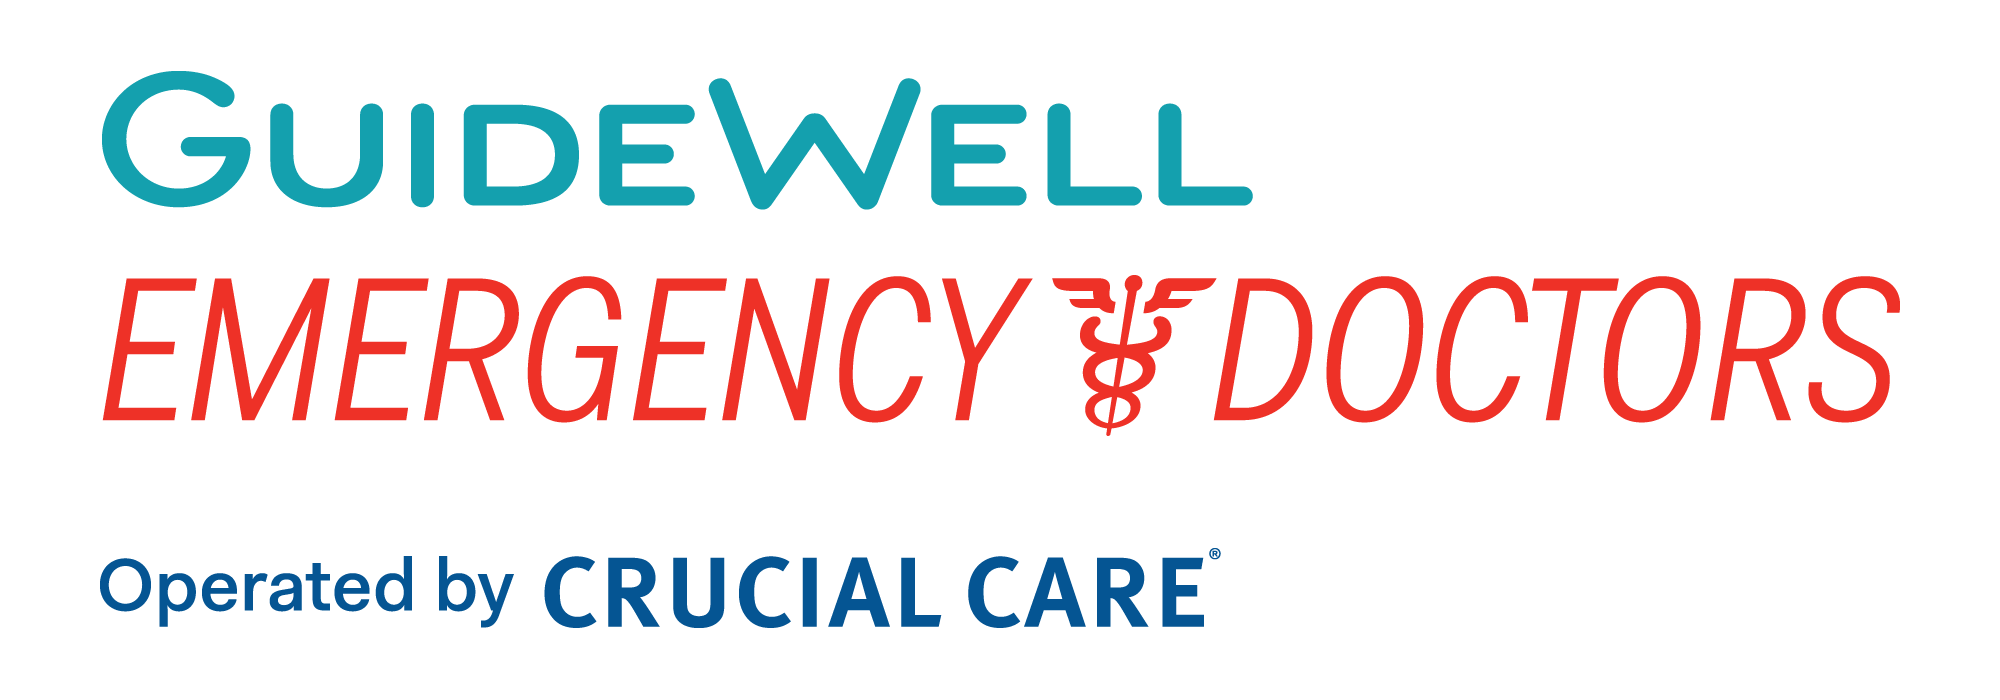 Guidewell Emergency Doctors - West Tampa Logo